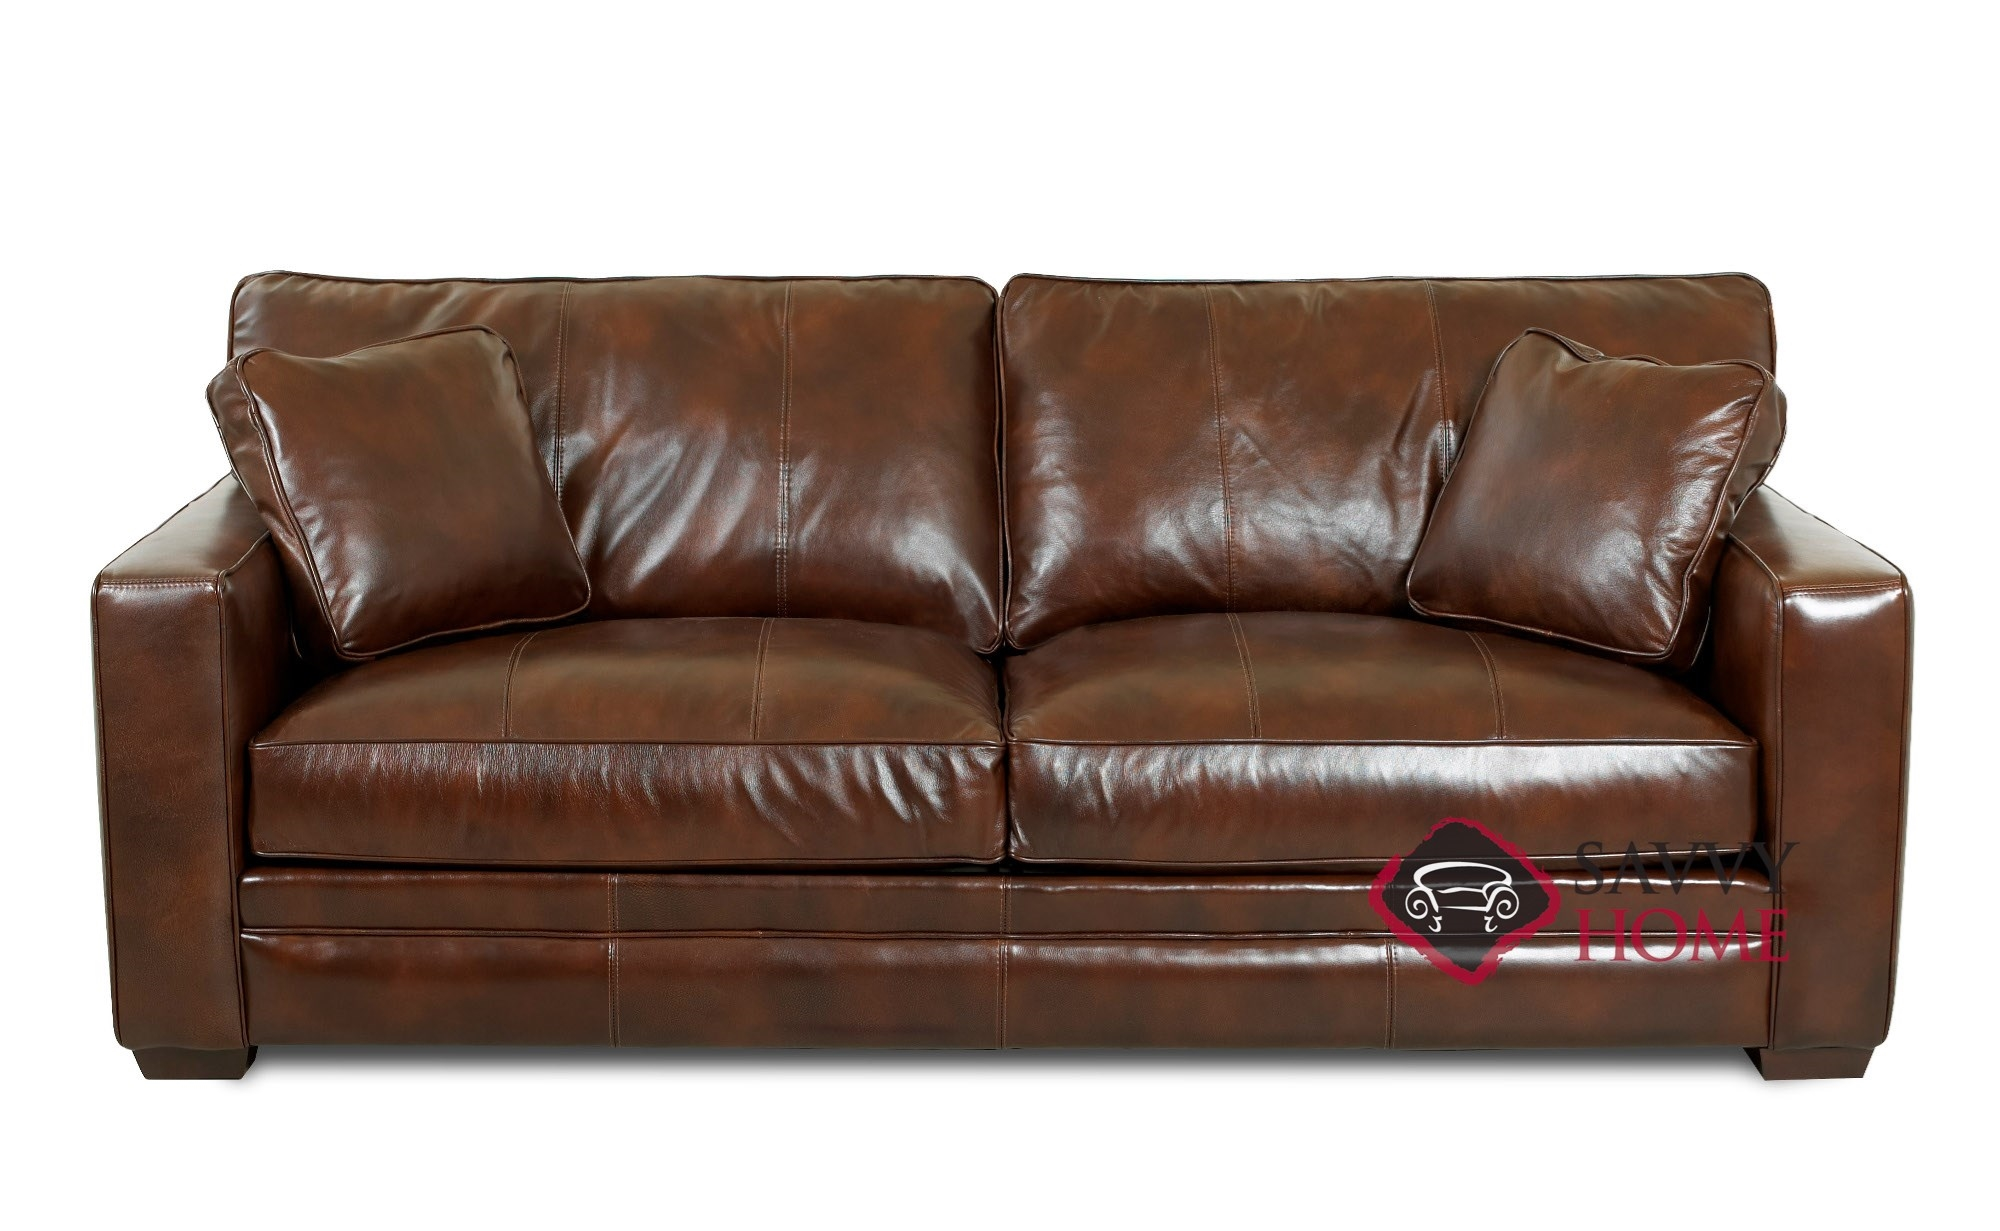 - Chandler Leather Sleeper Sofas Queen By Savvy Is Fully